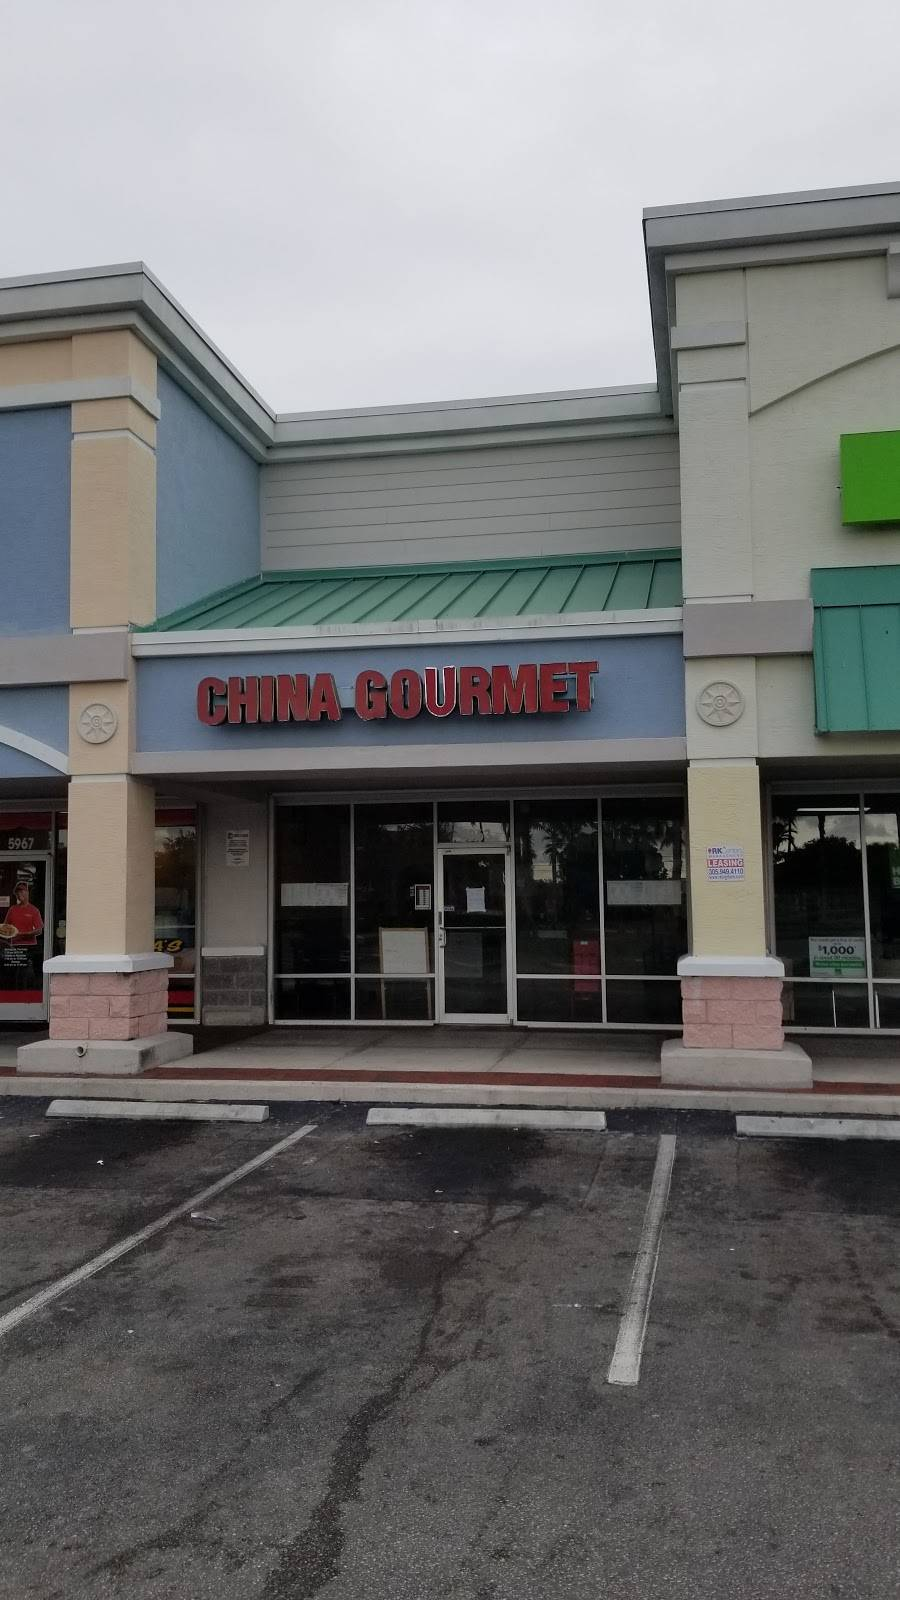 China Gourmet   meal delivery   5963 W Oakland Park Blvd, Lauderhill, FL 33313, USA   9544843313 OR +1 954-484-3313